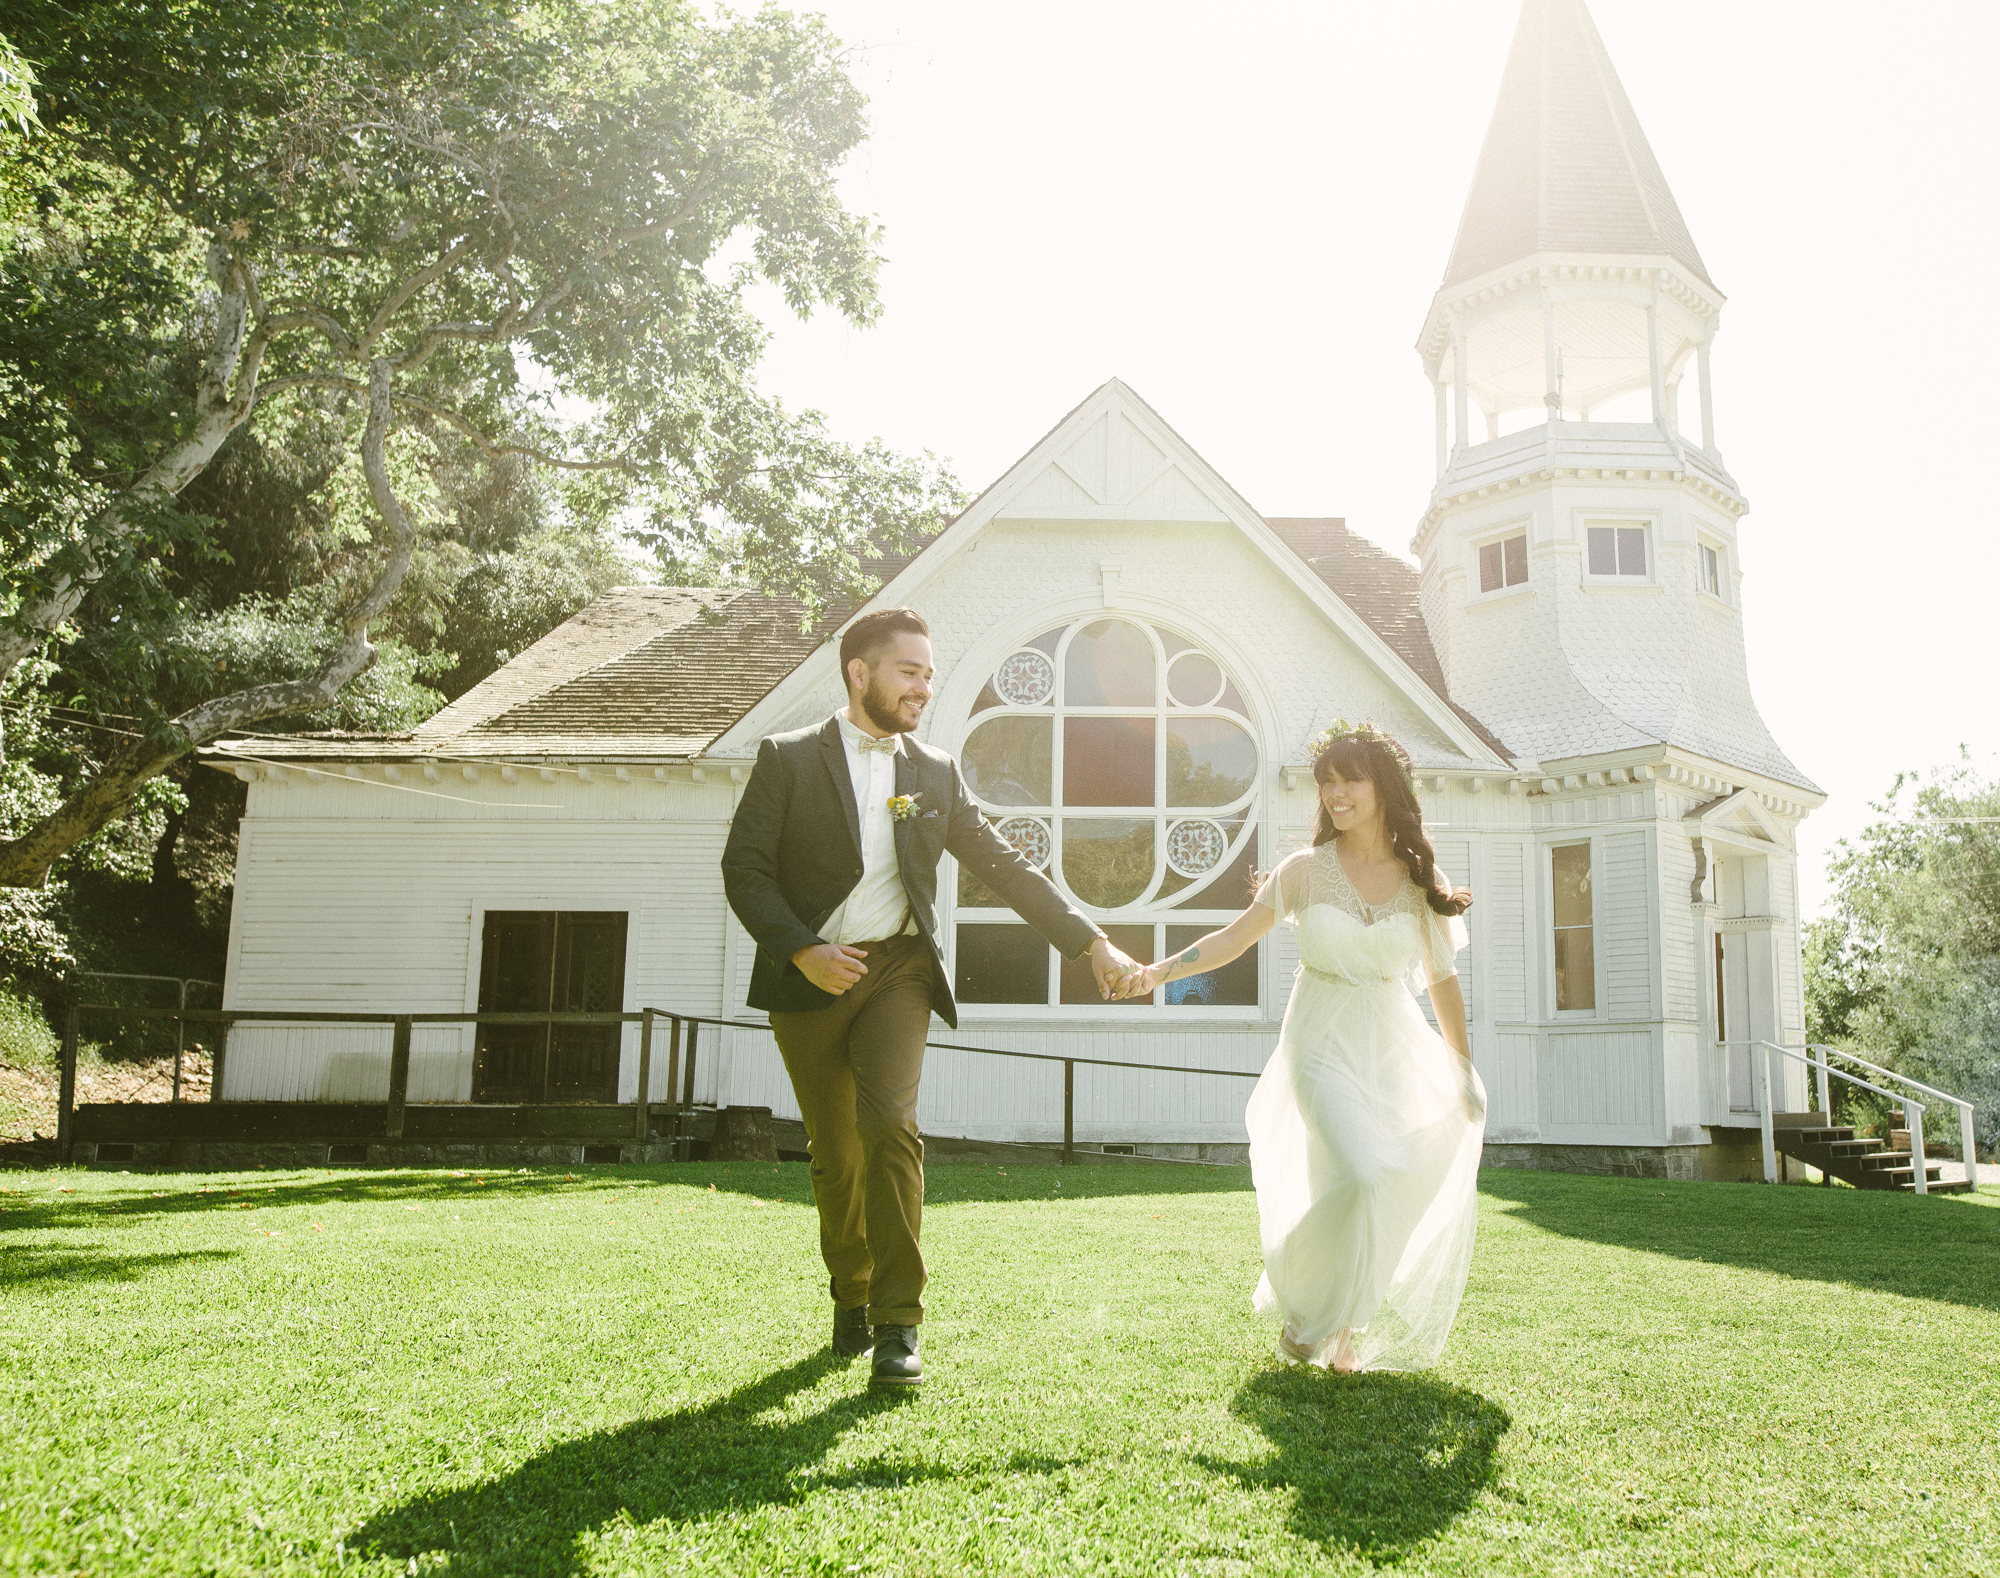 Isaiah & Taylor Photography - Los Angeles - Destination Wedding Photographers - Heritage Square Museum -60.jpg